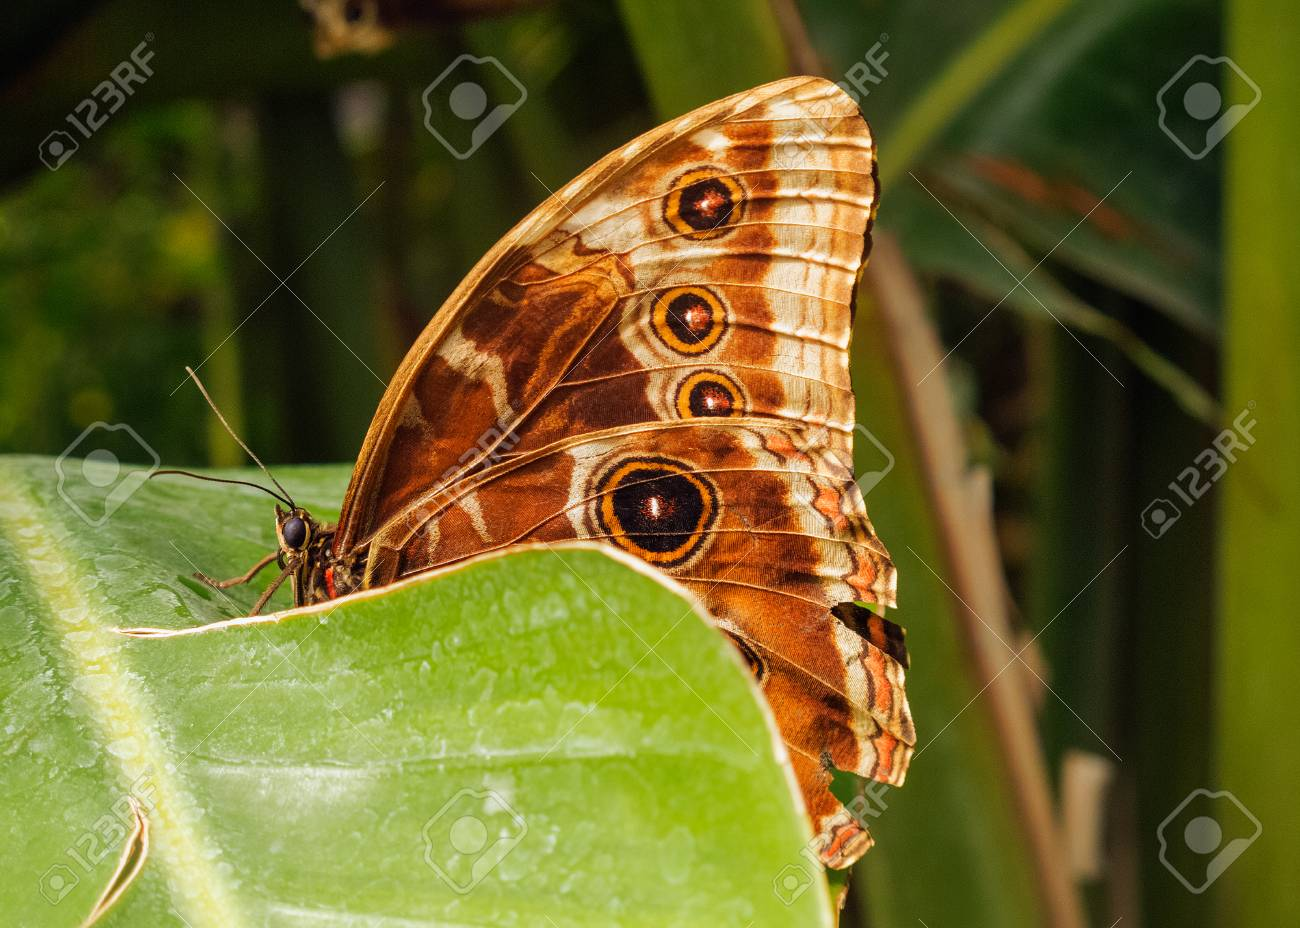 A Morpho peleides butterfly resting on a leaf. In evidence the morphology of the animal,the geometric and colorful design of the wings - 96397007